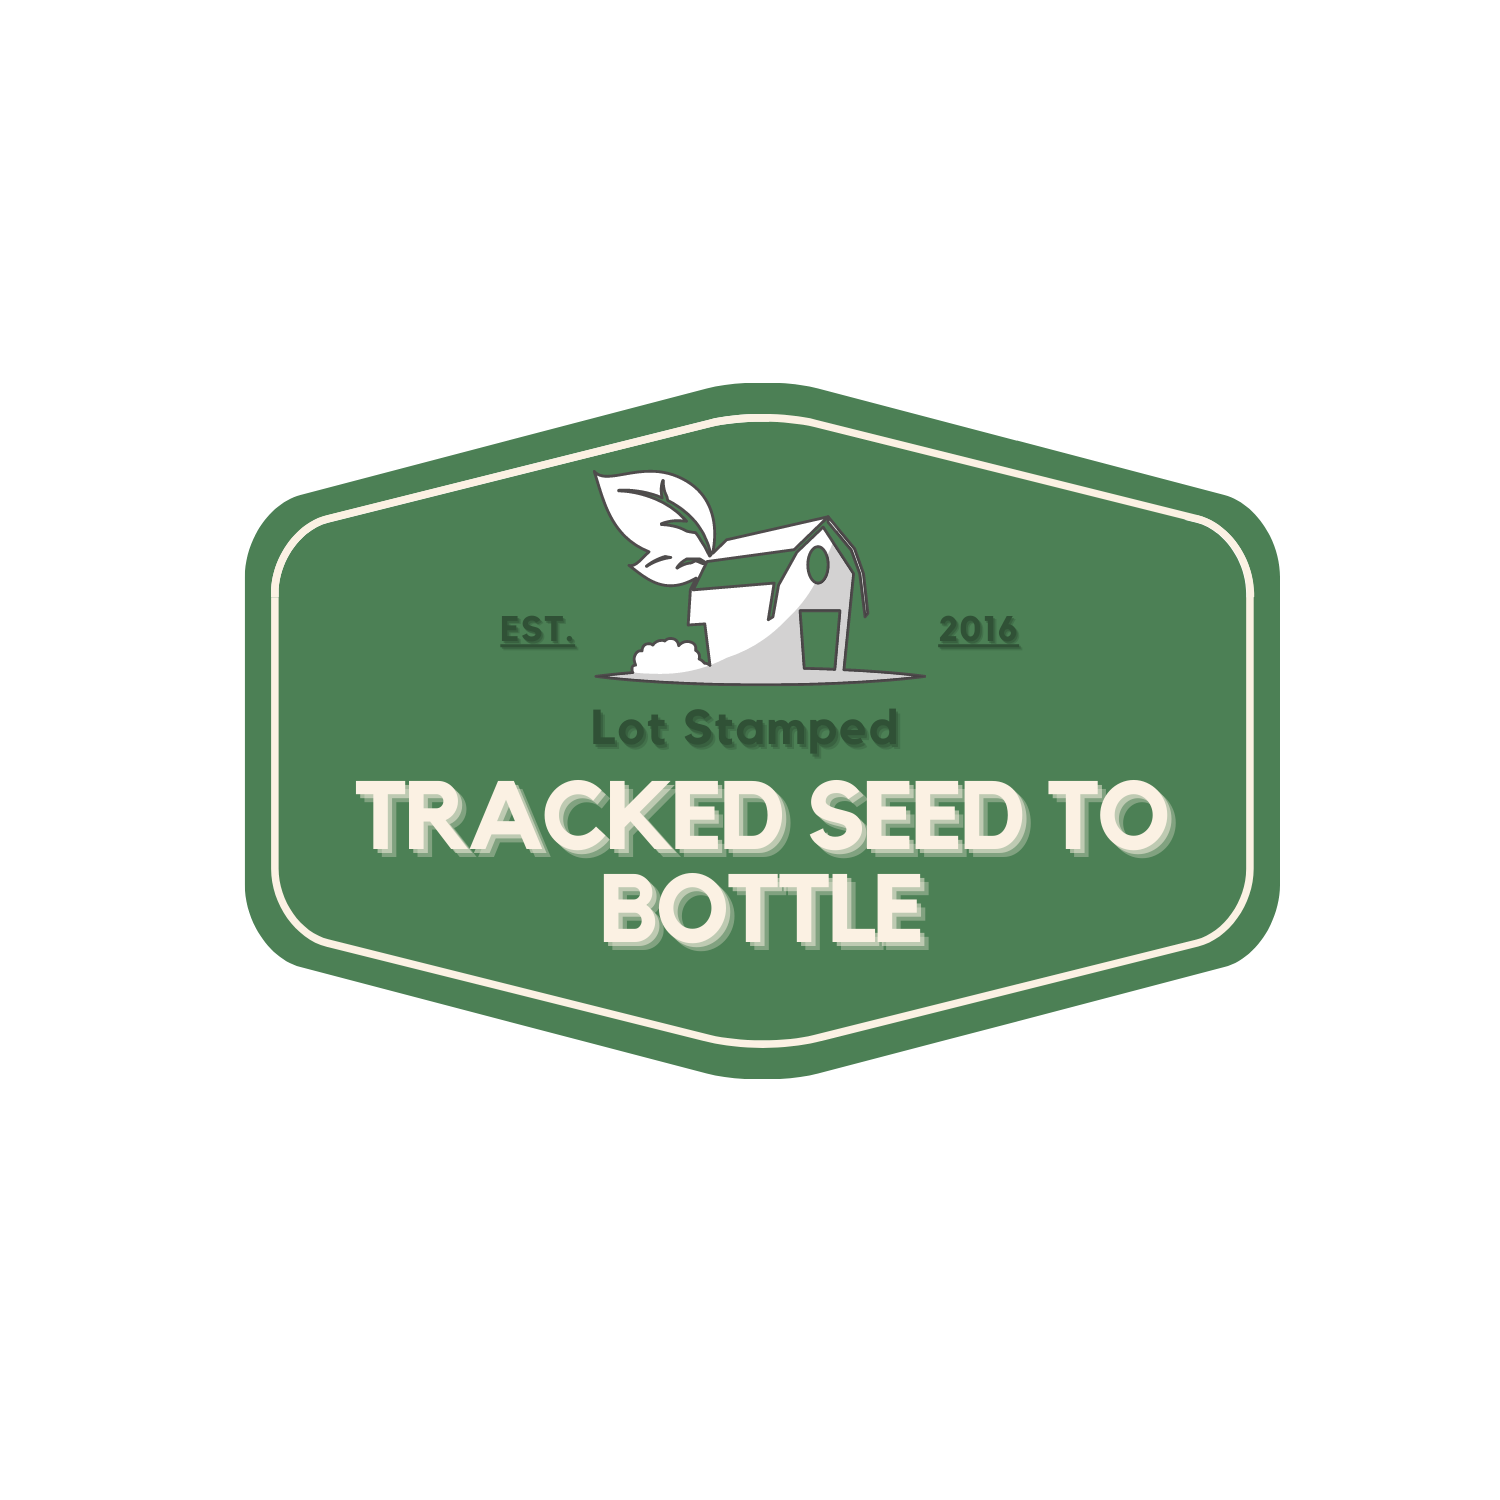 Tracked Seed to Bottle